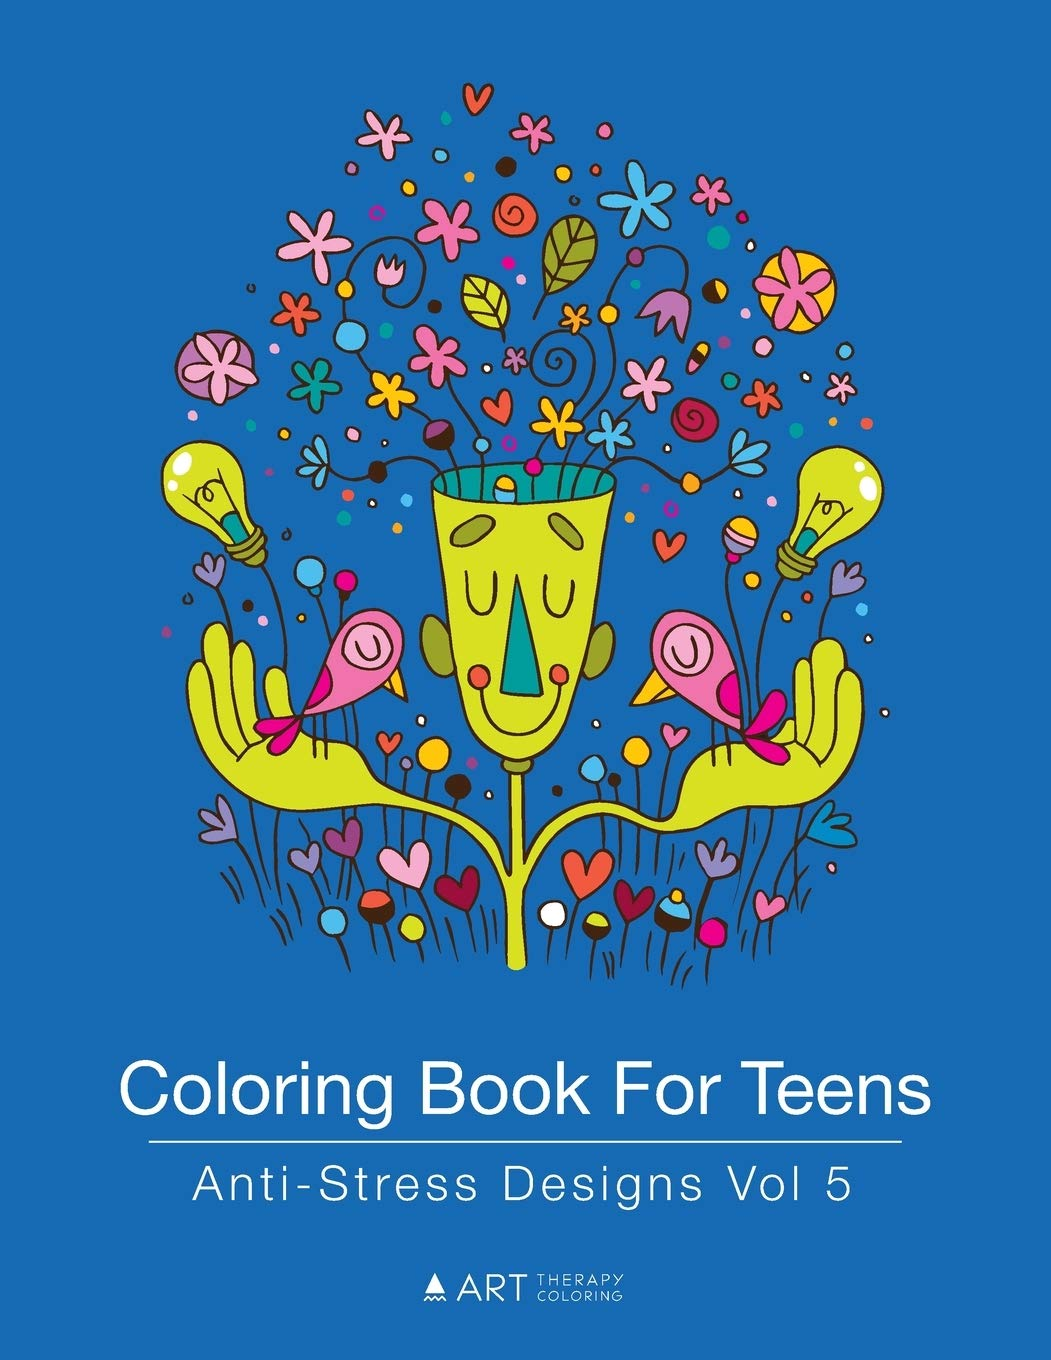 Coloring book for Teens: Anti-stress Designs vol 5' - Unique Gift Ideas For 17 Year Old Female Teenage Girl